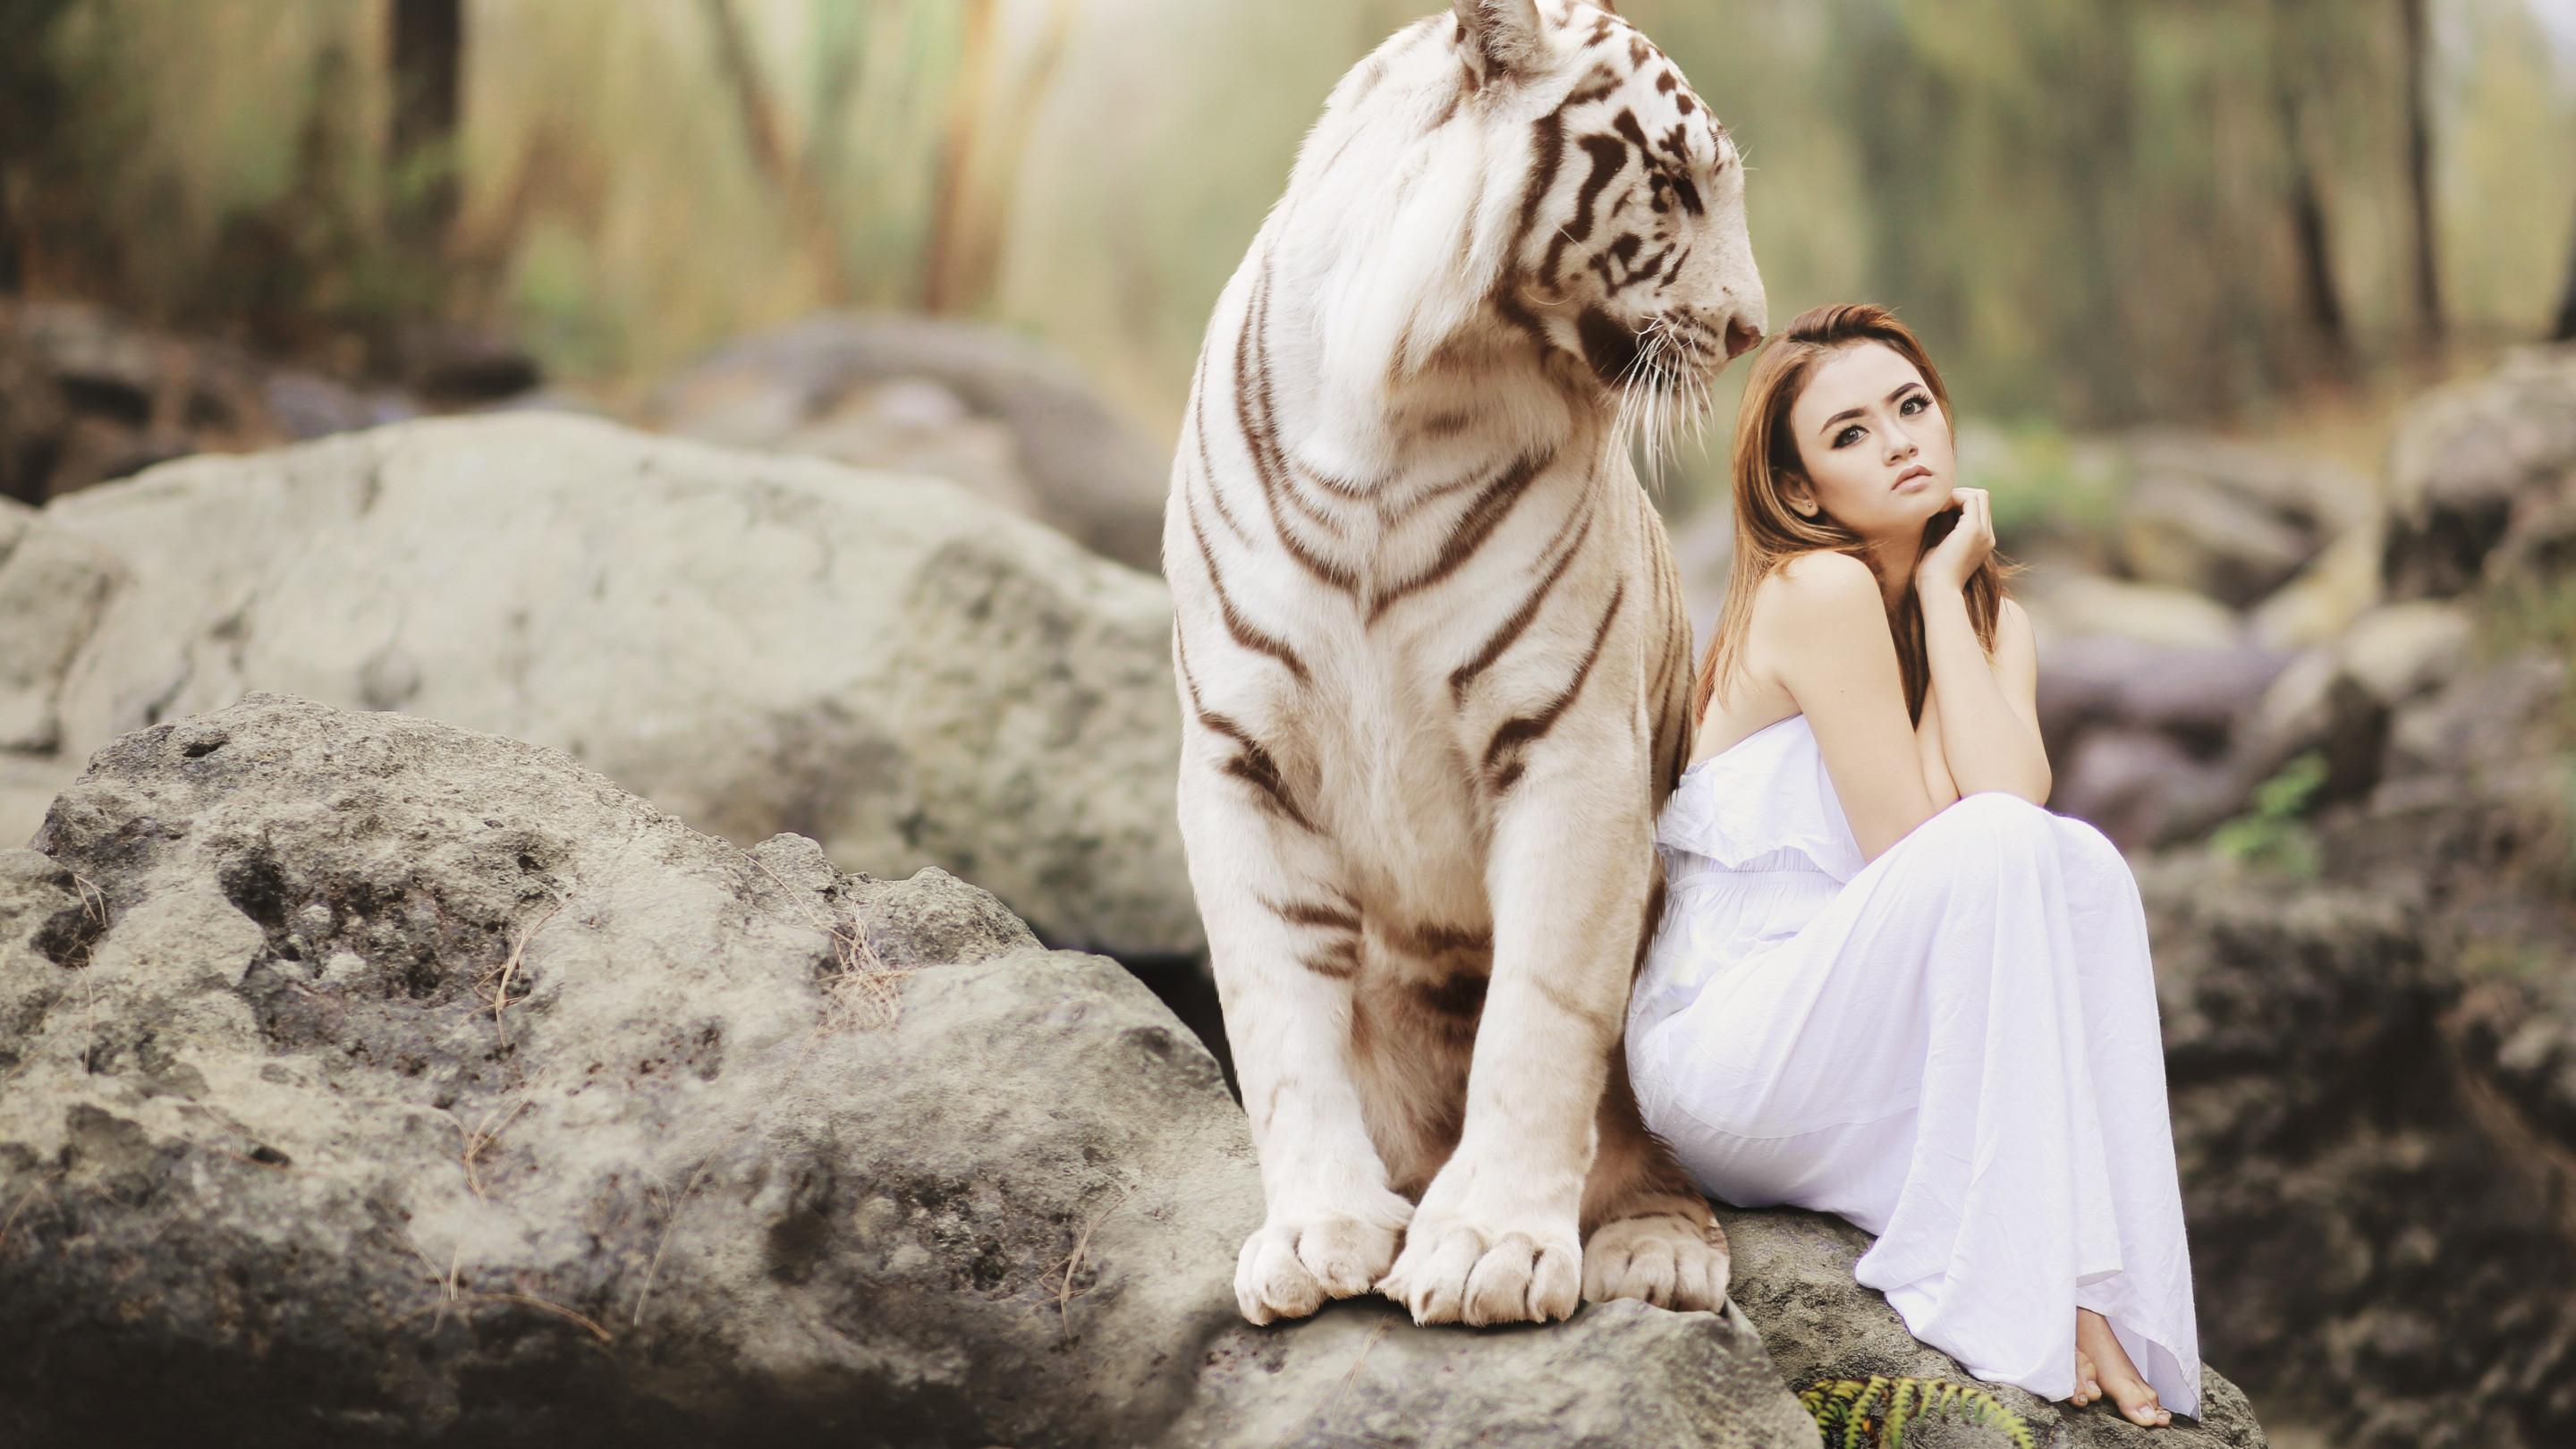 Bengal tiger and a beautiful girl | 2880x1620 wallpaper